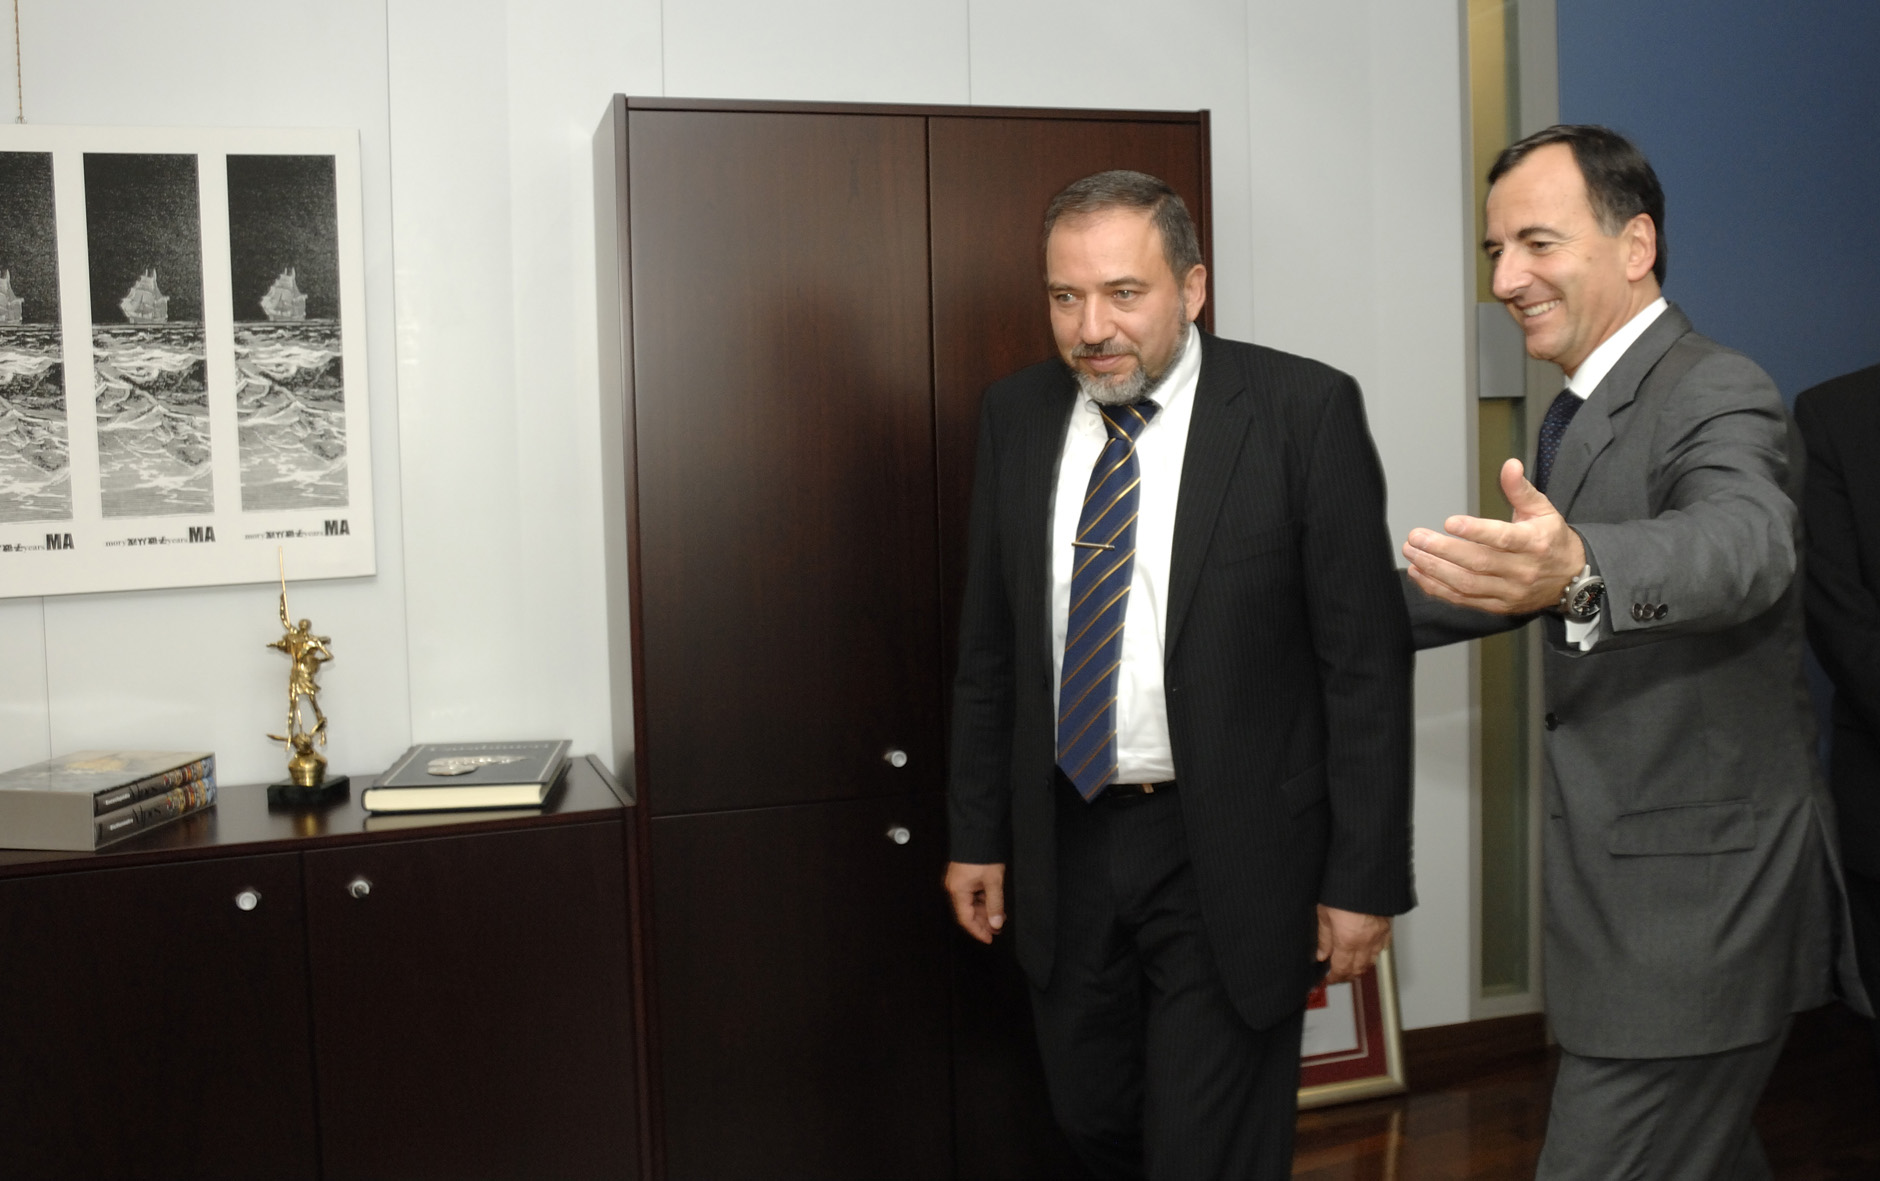 Visit by Avigdor Liberman, Israeli Deputy Prime Minister and Minister for Strategic Affairs, to the EC